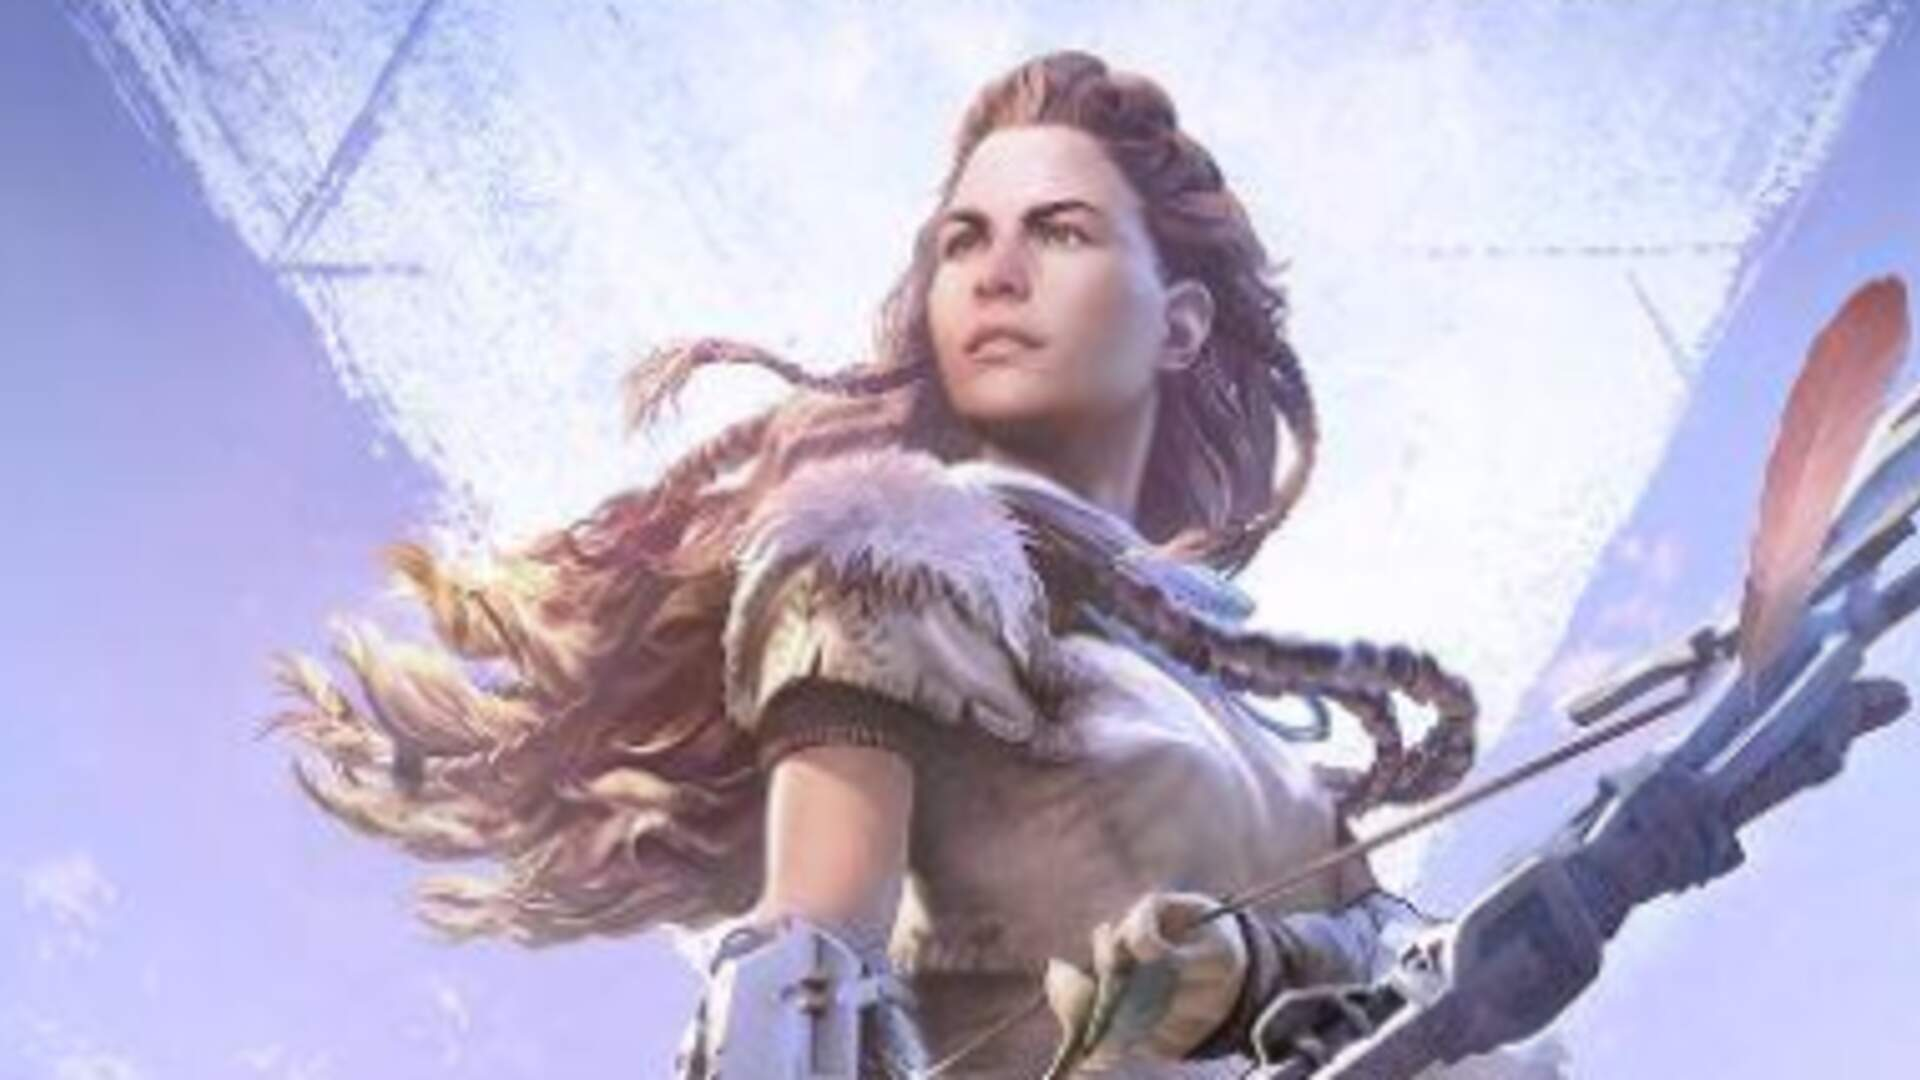 Horizon: Zero Dawn is Getting a Complete Edition That Includes the Upcoming Frozen Wilds DLC